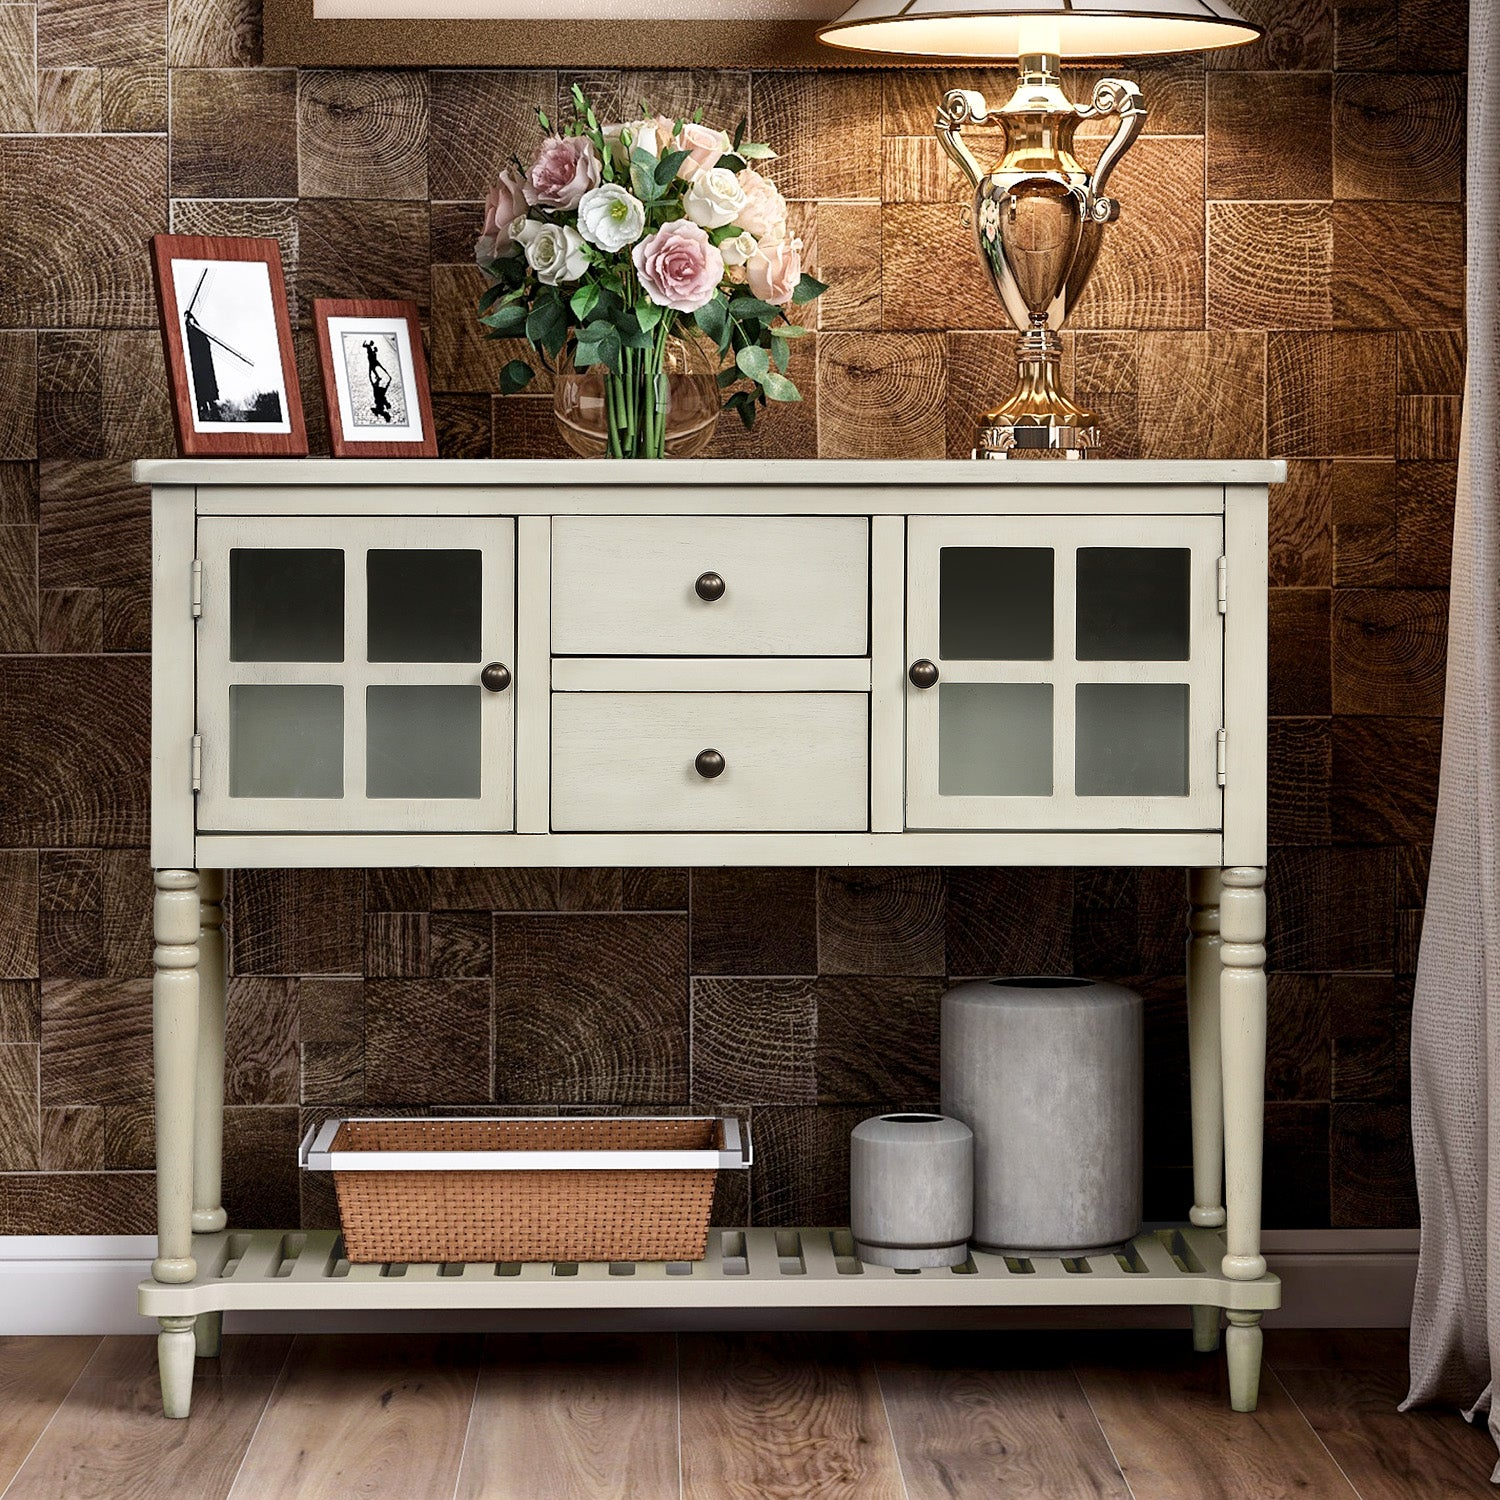 Light Gray Sideboard Console Table with Bottom Shelf, Farmhouse Wood/Glass Buffet Storage Cabinet Living Room BH193444